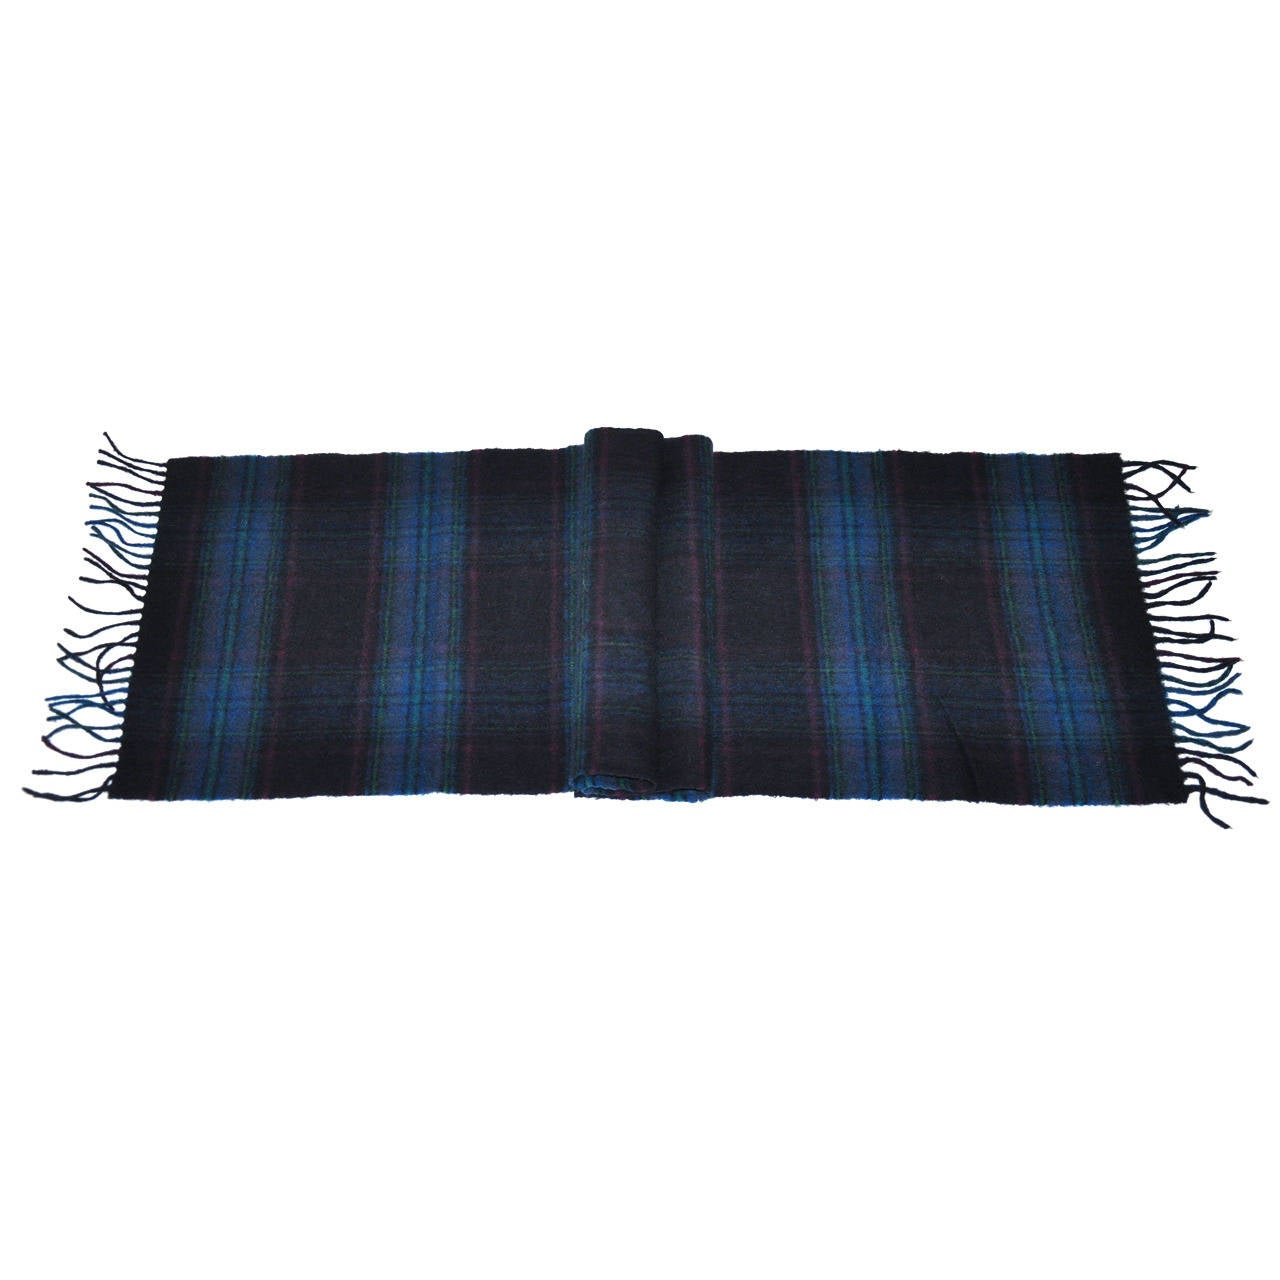 Harrods Multi-Color Plaid Cashmere and Wool with Fringe Scarf 1